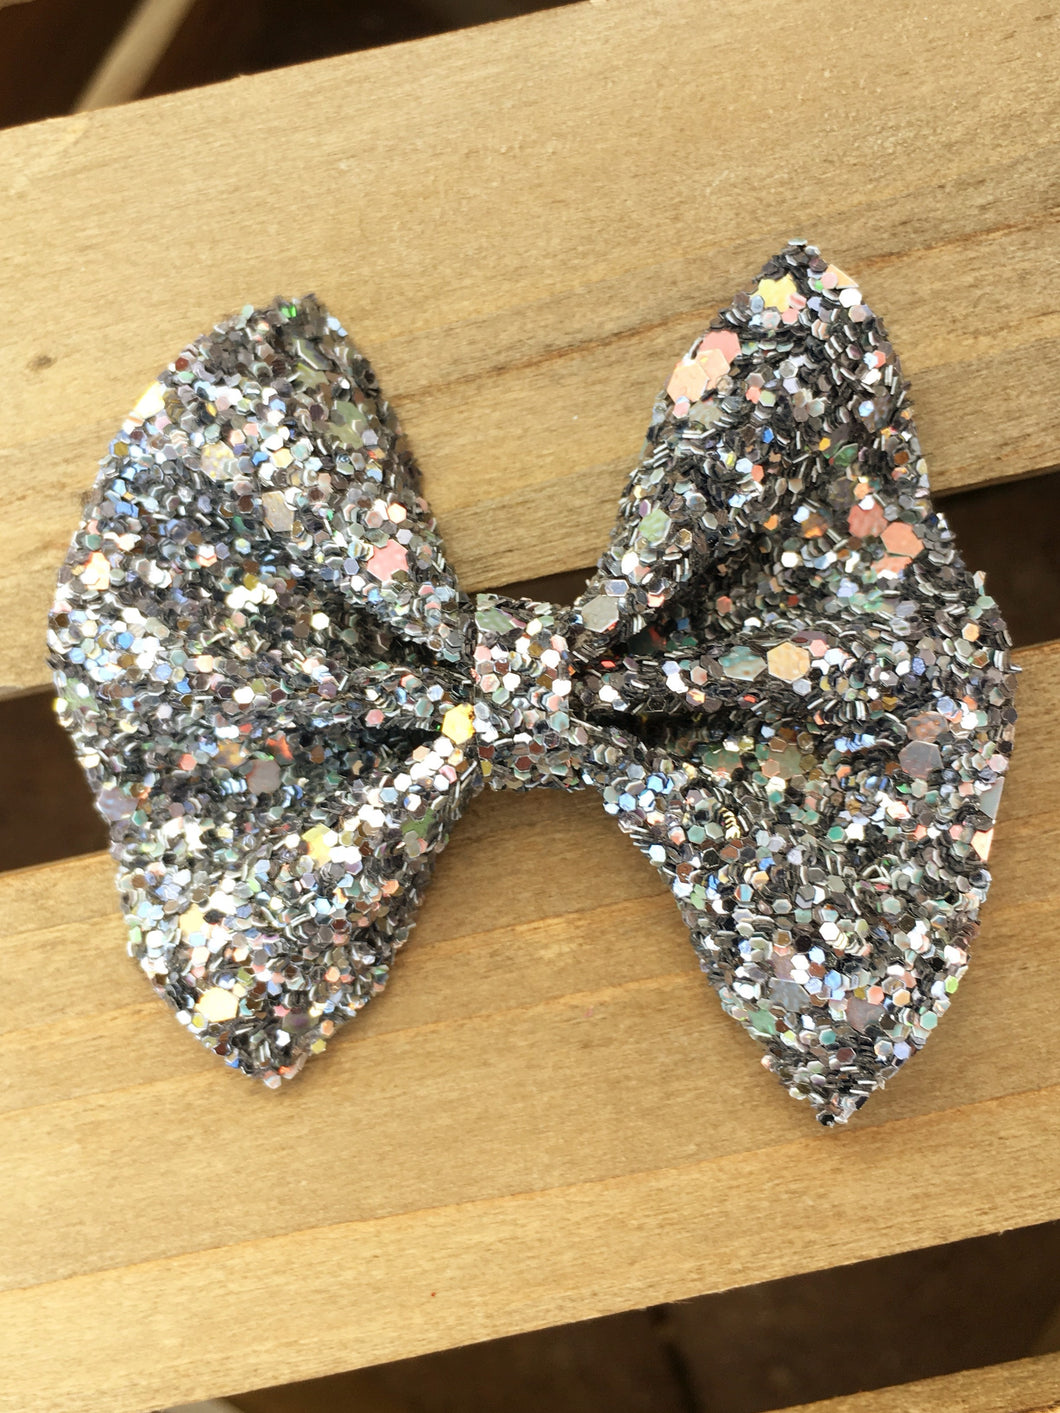 Claire OG Standard - Charcoal gray glitter bow, tan nylon headband, felt lined alligator clip, baby shower gift, baby accessories, toddler accessories